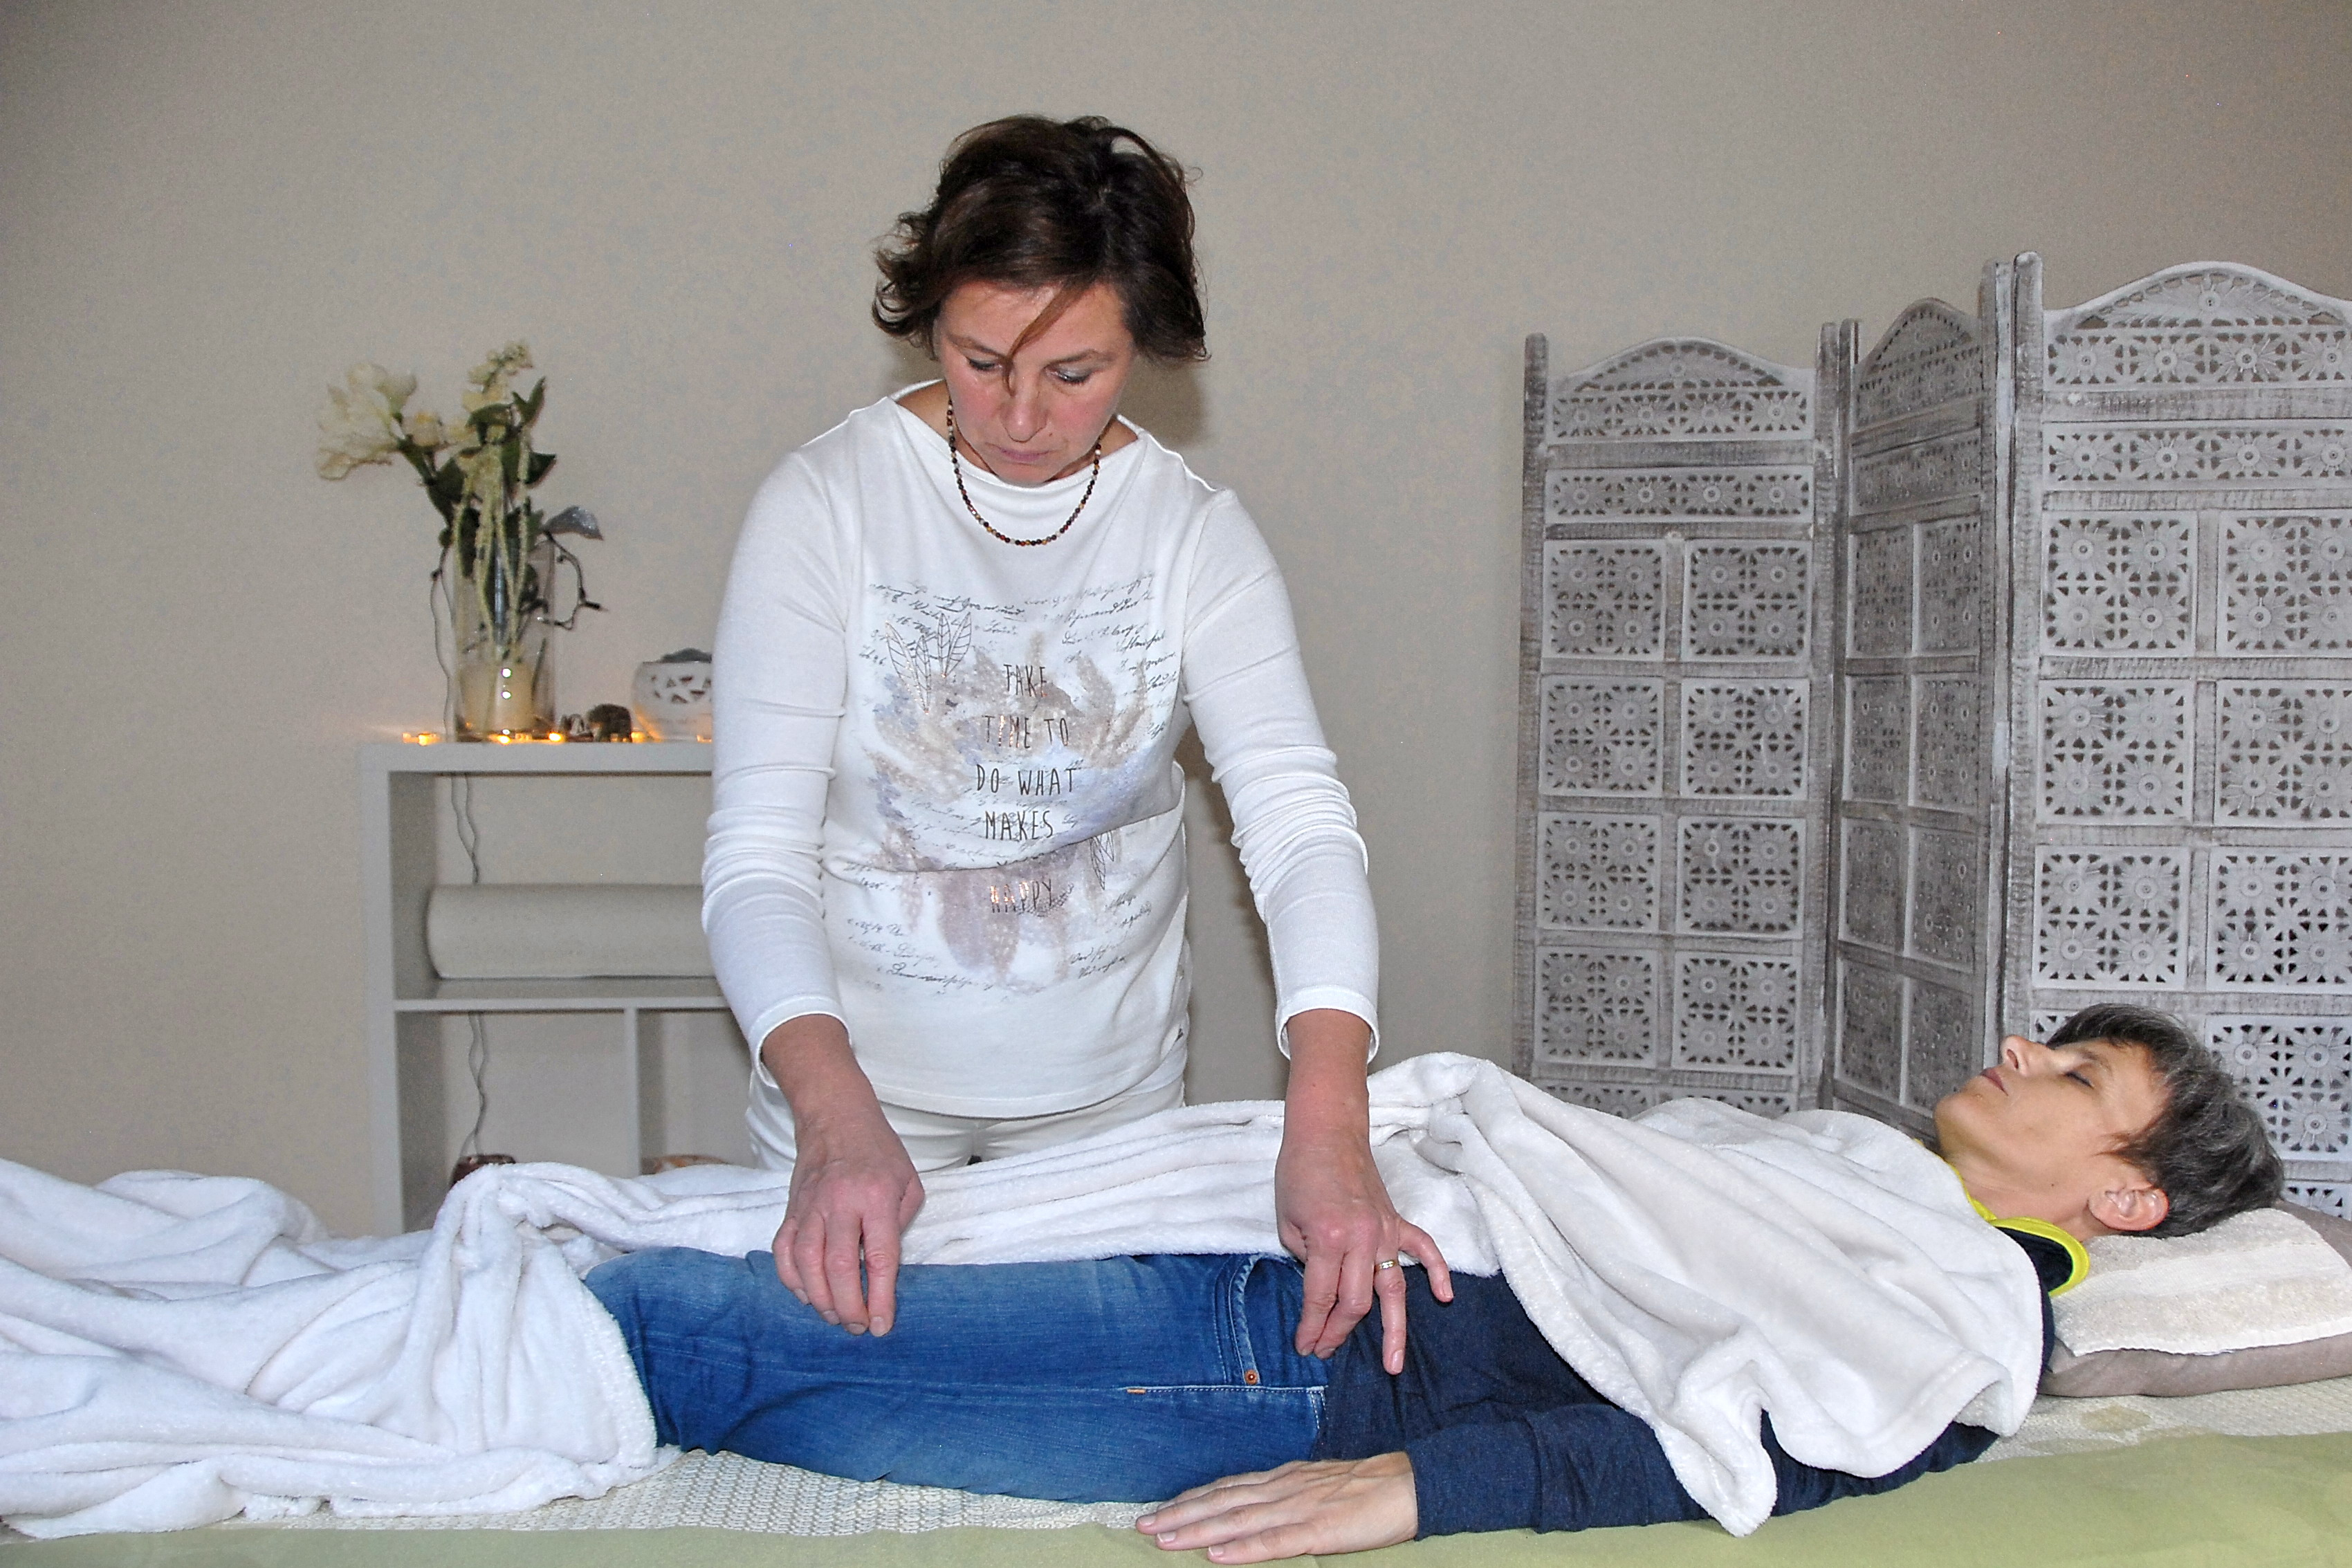 Human Therapy in der Anwendung